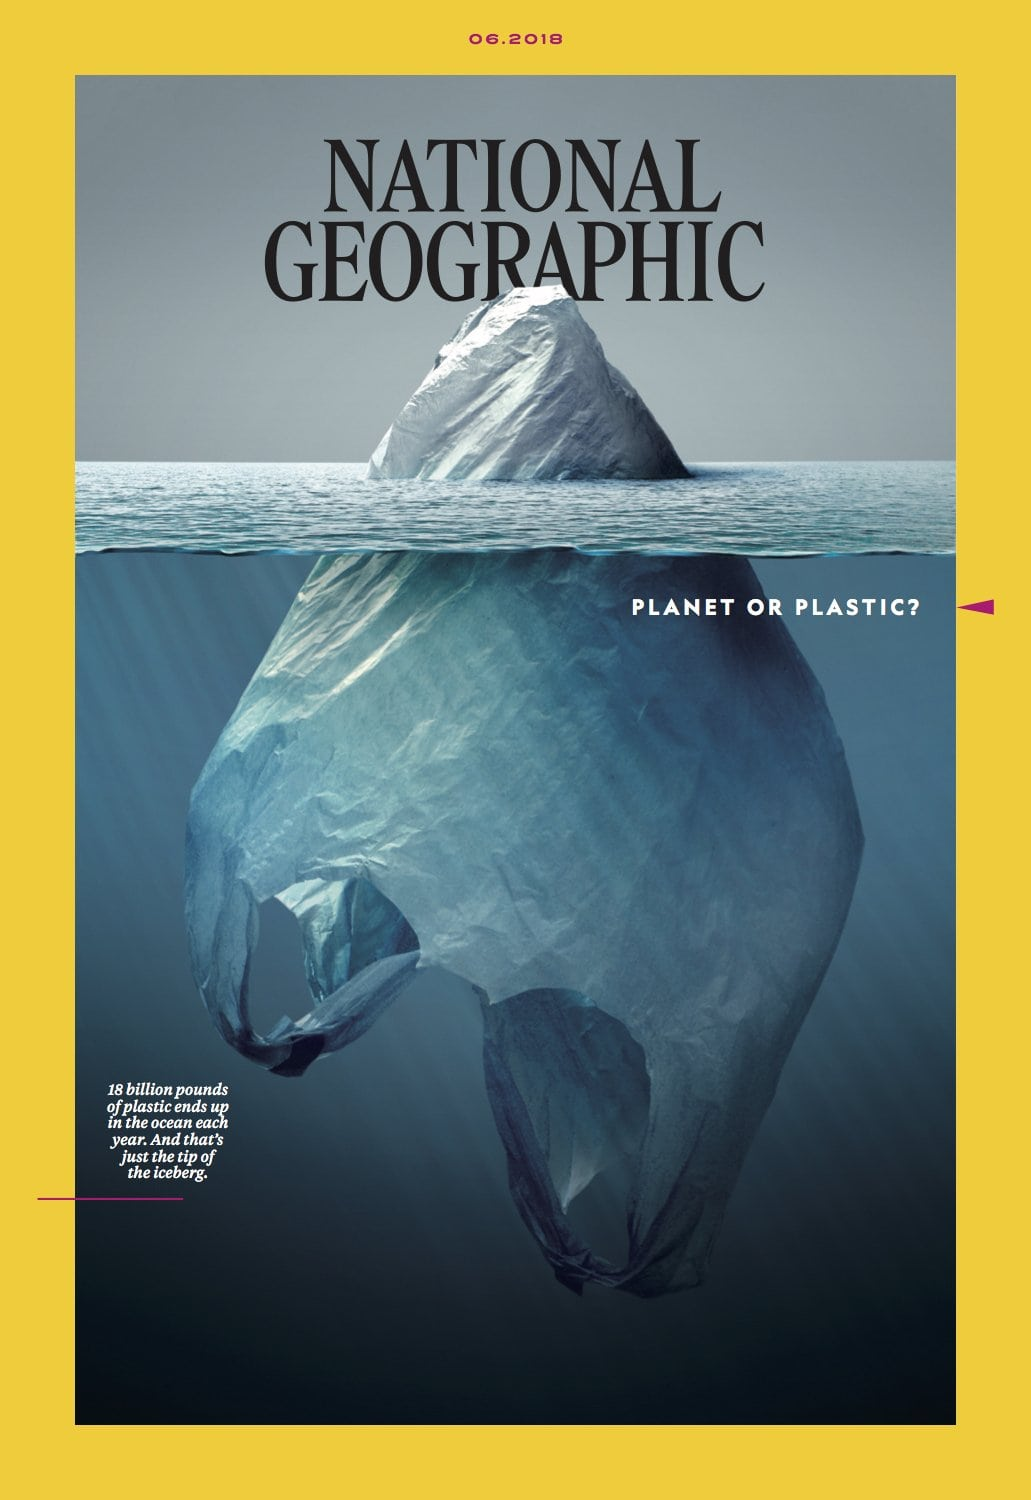 Image National Geographic cover for June 2018 [By Jorge Gamboa]